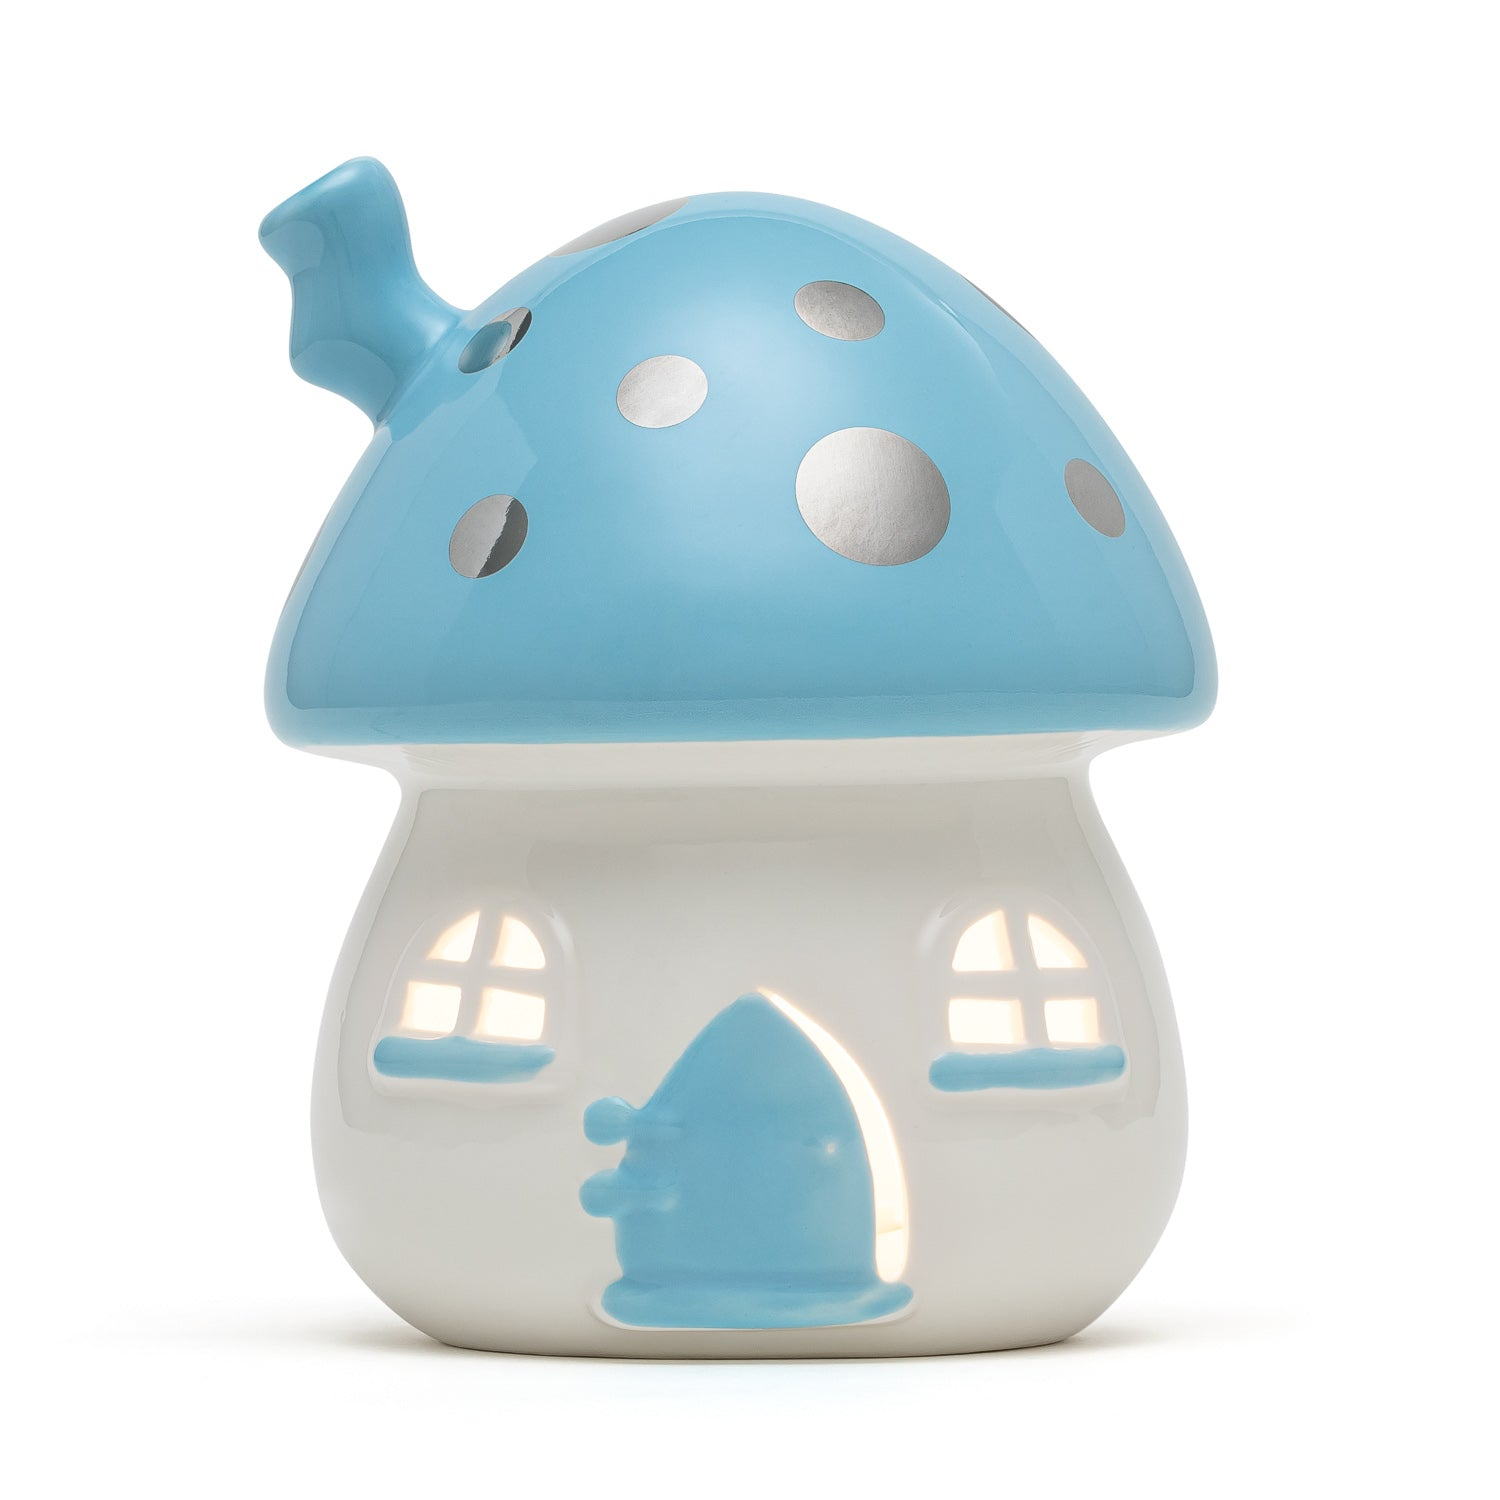 Little Belle Fairy House Nightlight - Blue & Silver [Plug-in]